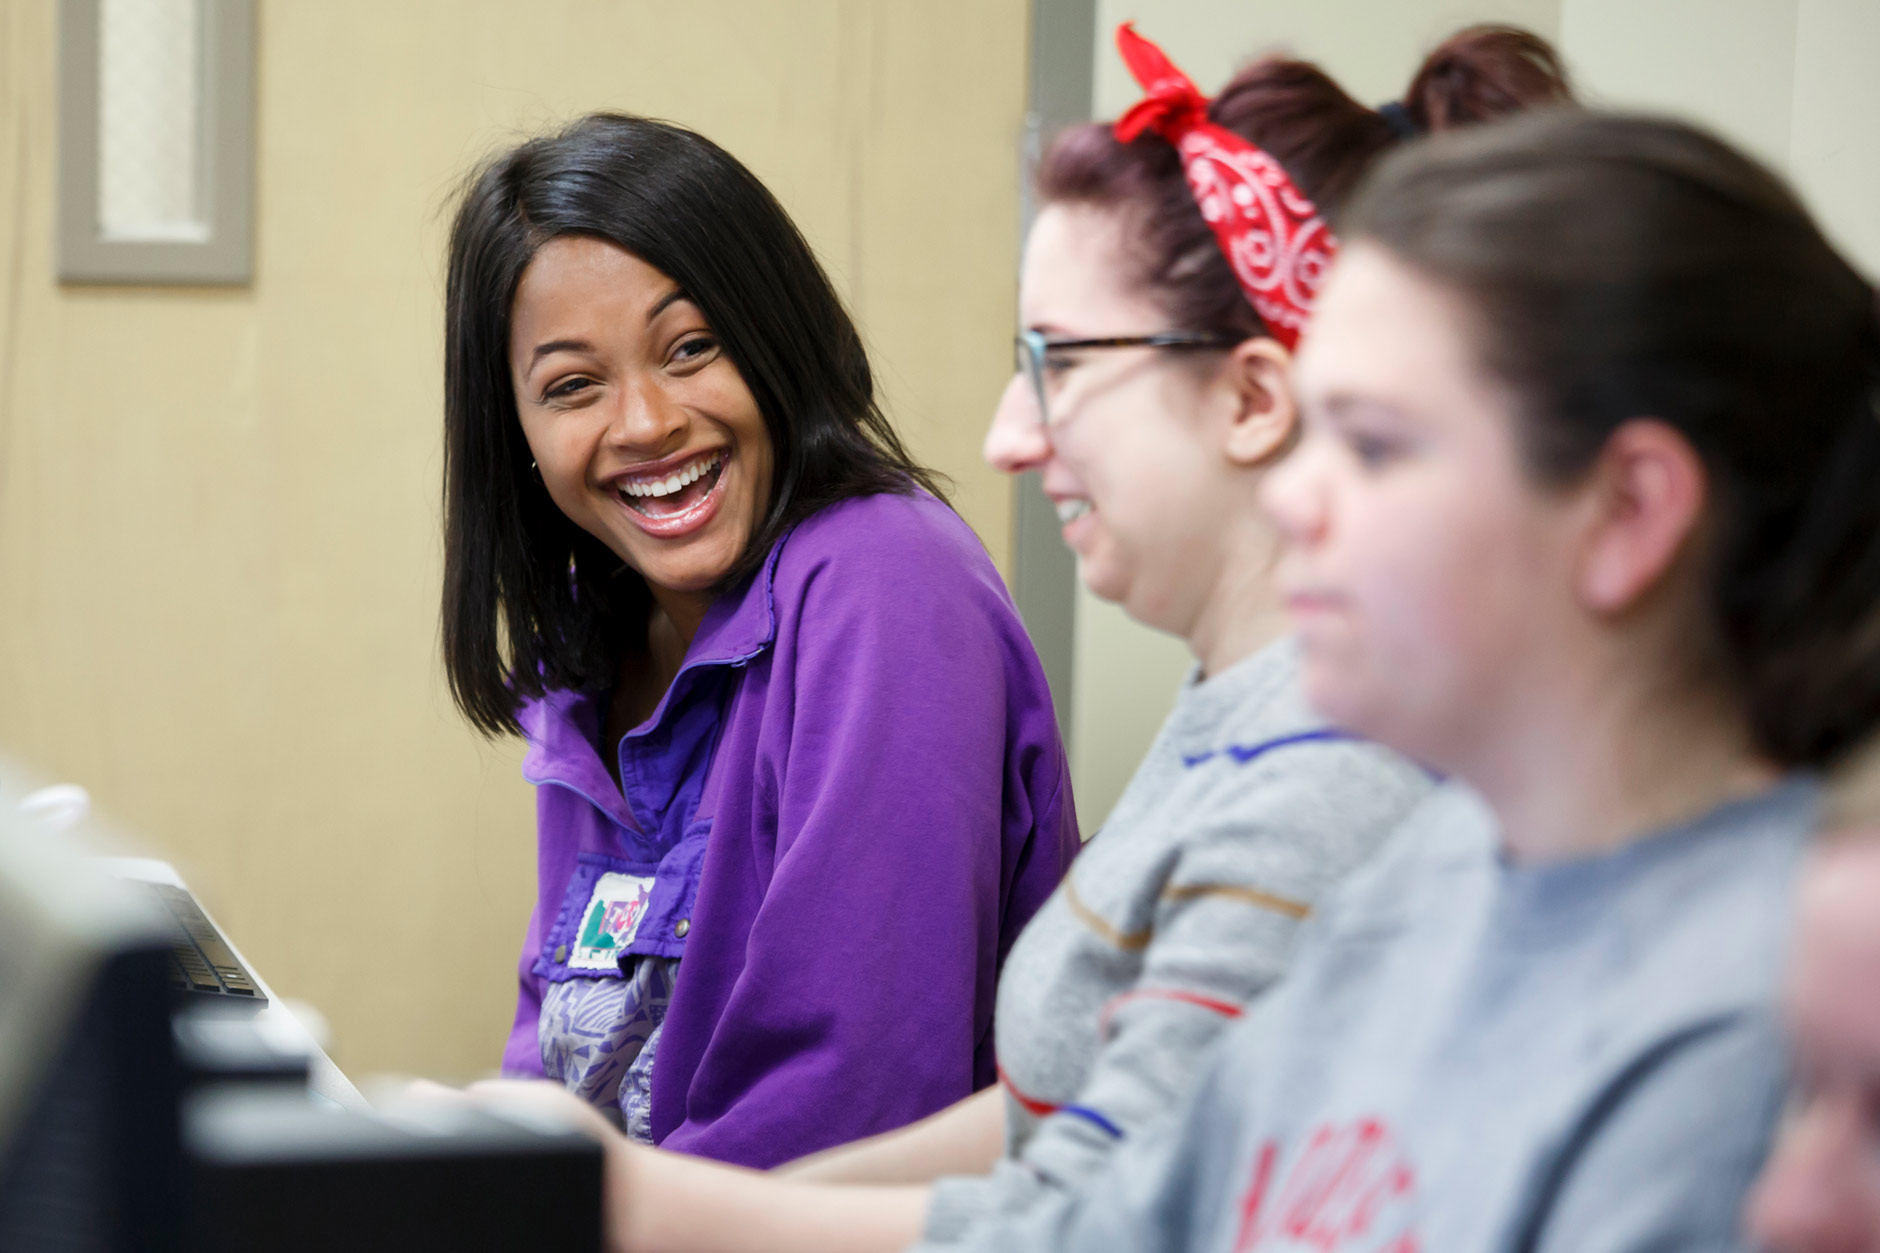 Mica Caine, a graduating senior at IU Bloomington, laughs with friends before a class in Hodge Hall at the Kelley School of Business in Bloomington on Wednesday, April 4, 2018. (James Brosher/IU Communications)